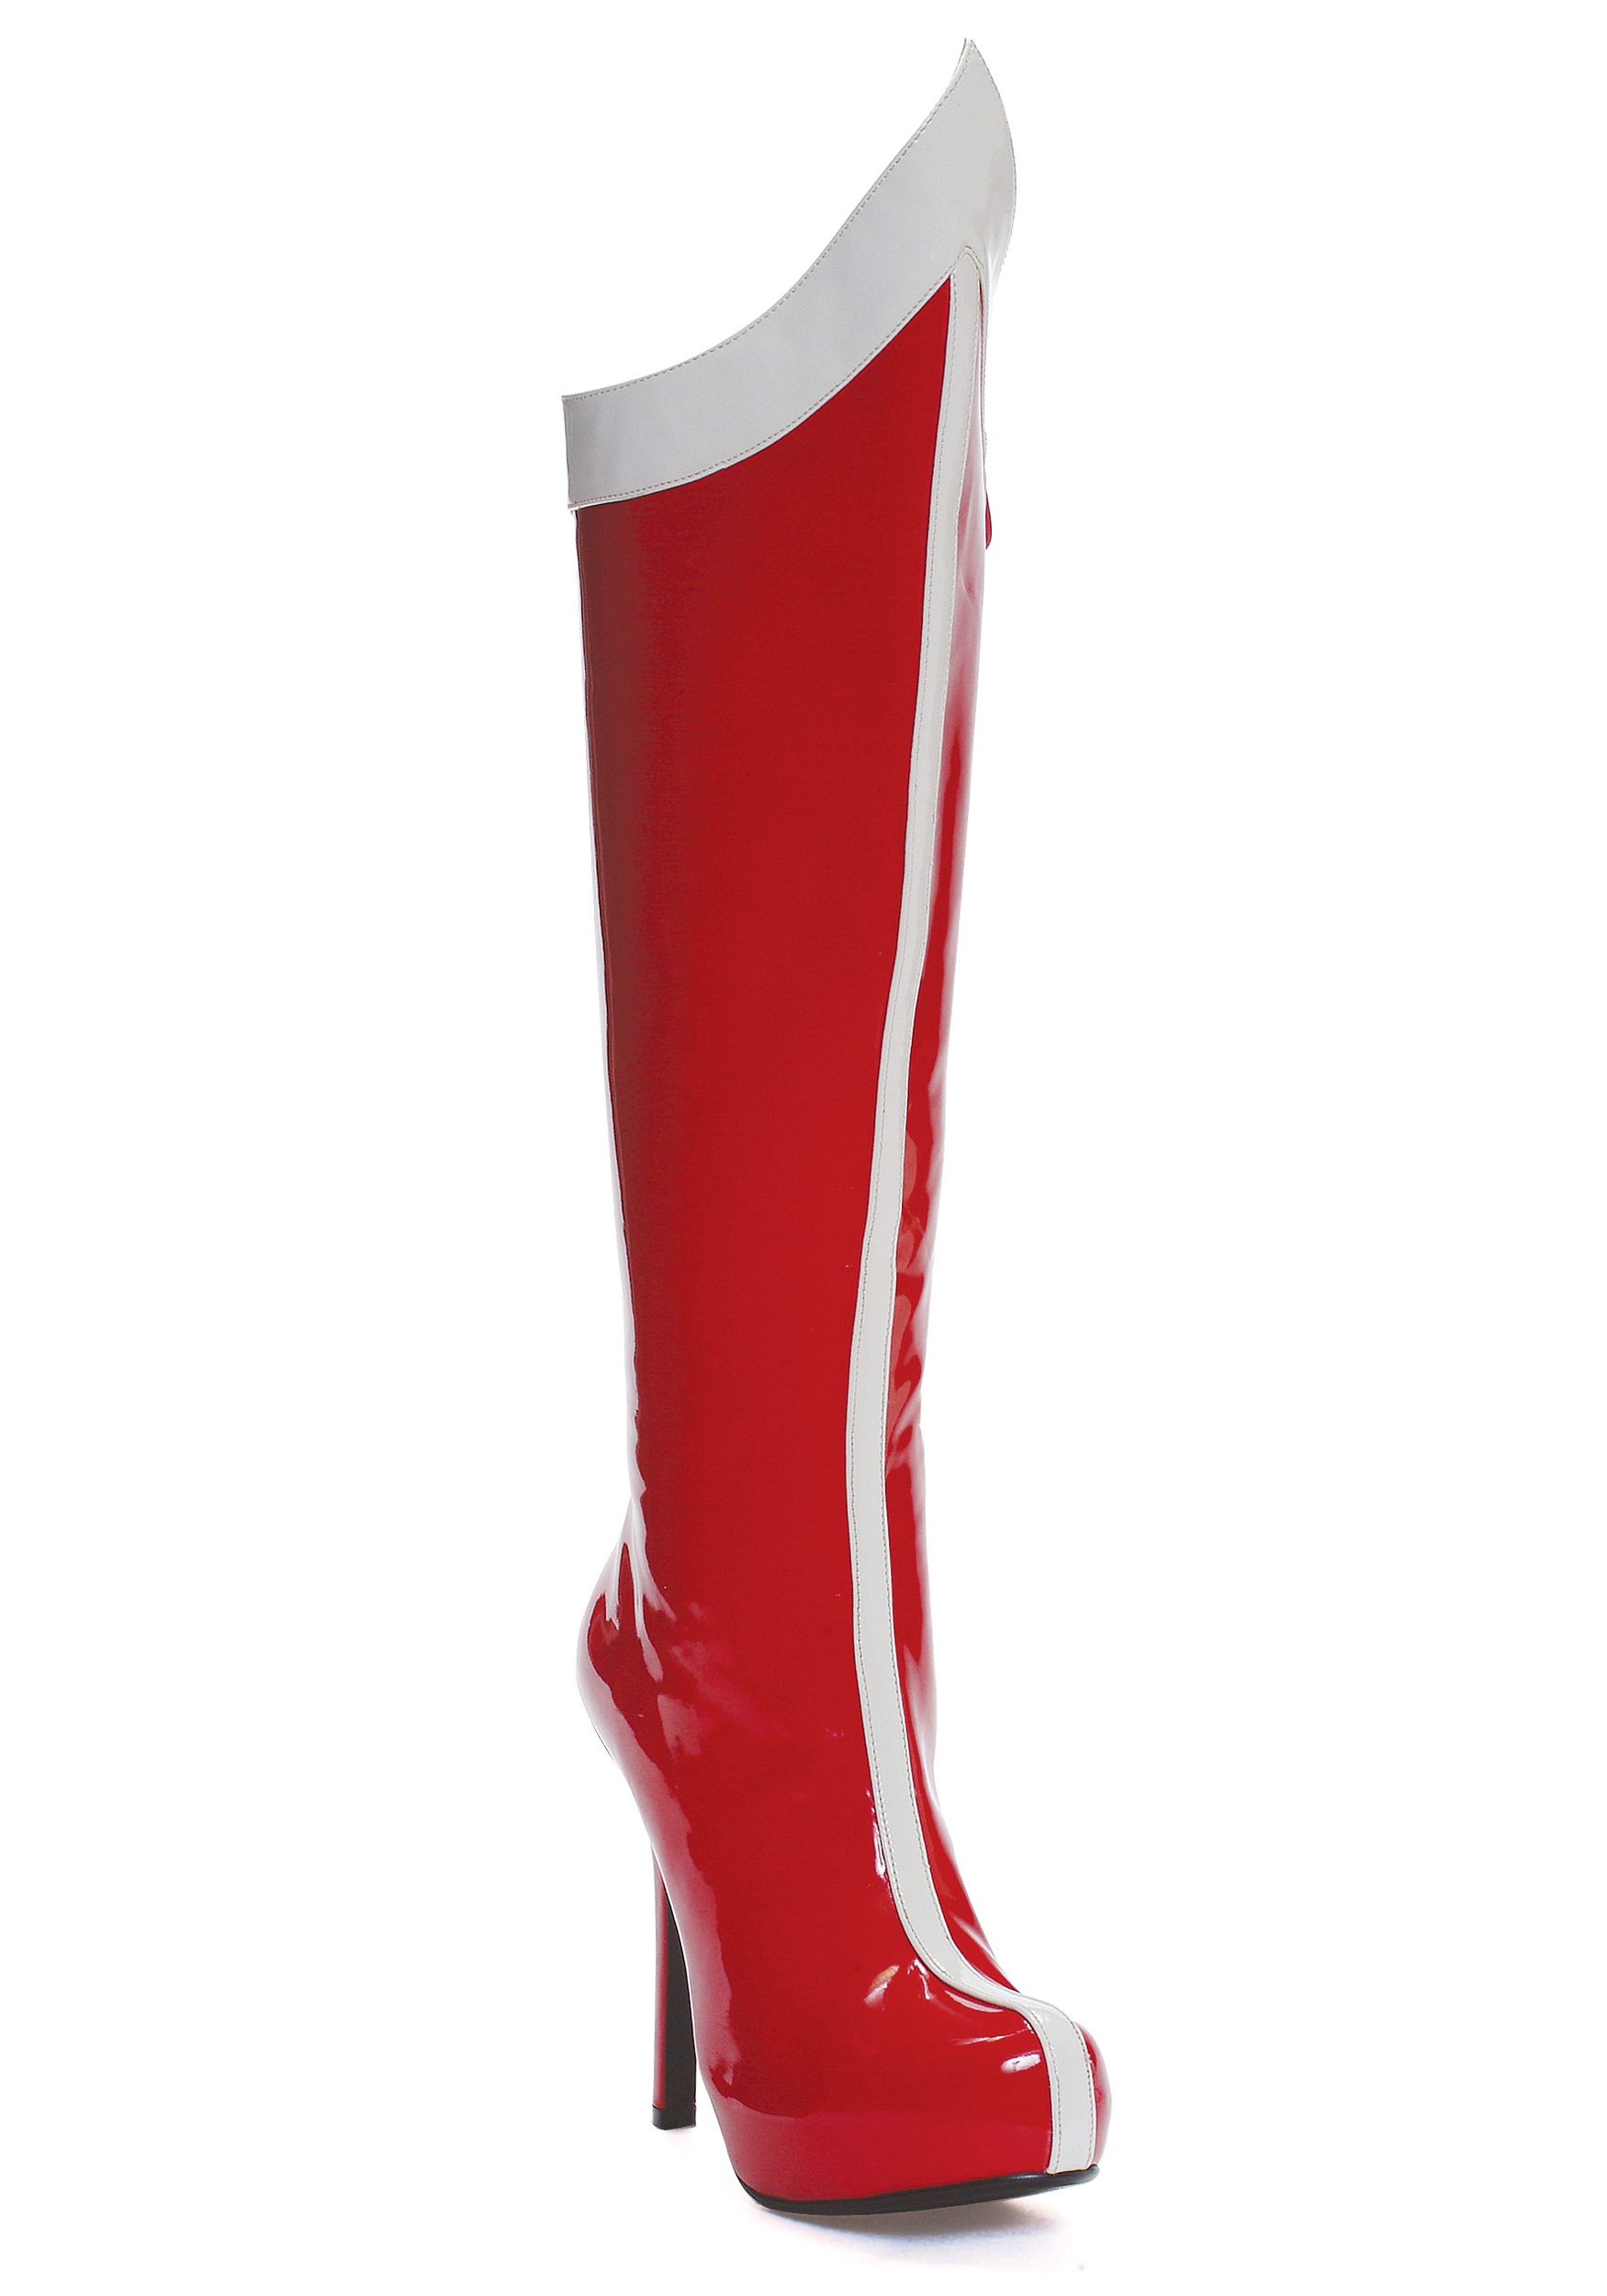 Red and White Superhero Costume Boots